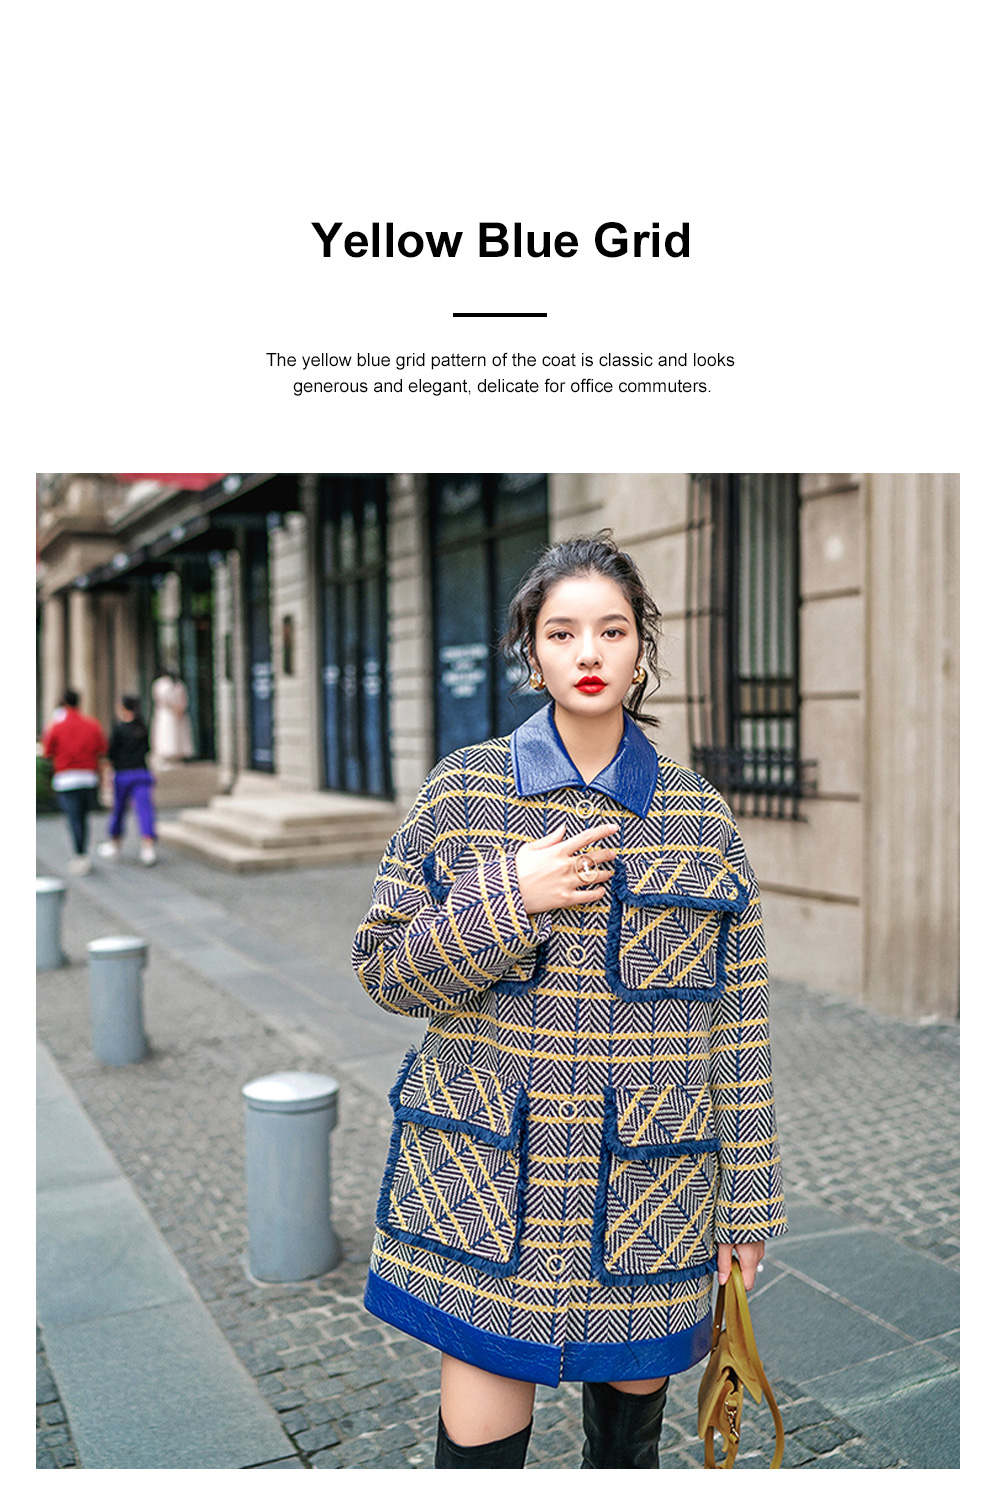 Grid Frock Coat Thickened Loose Great Coat for Women Wear New Style Cotton Clothes Autumn Winter 2019 1